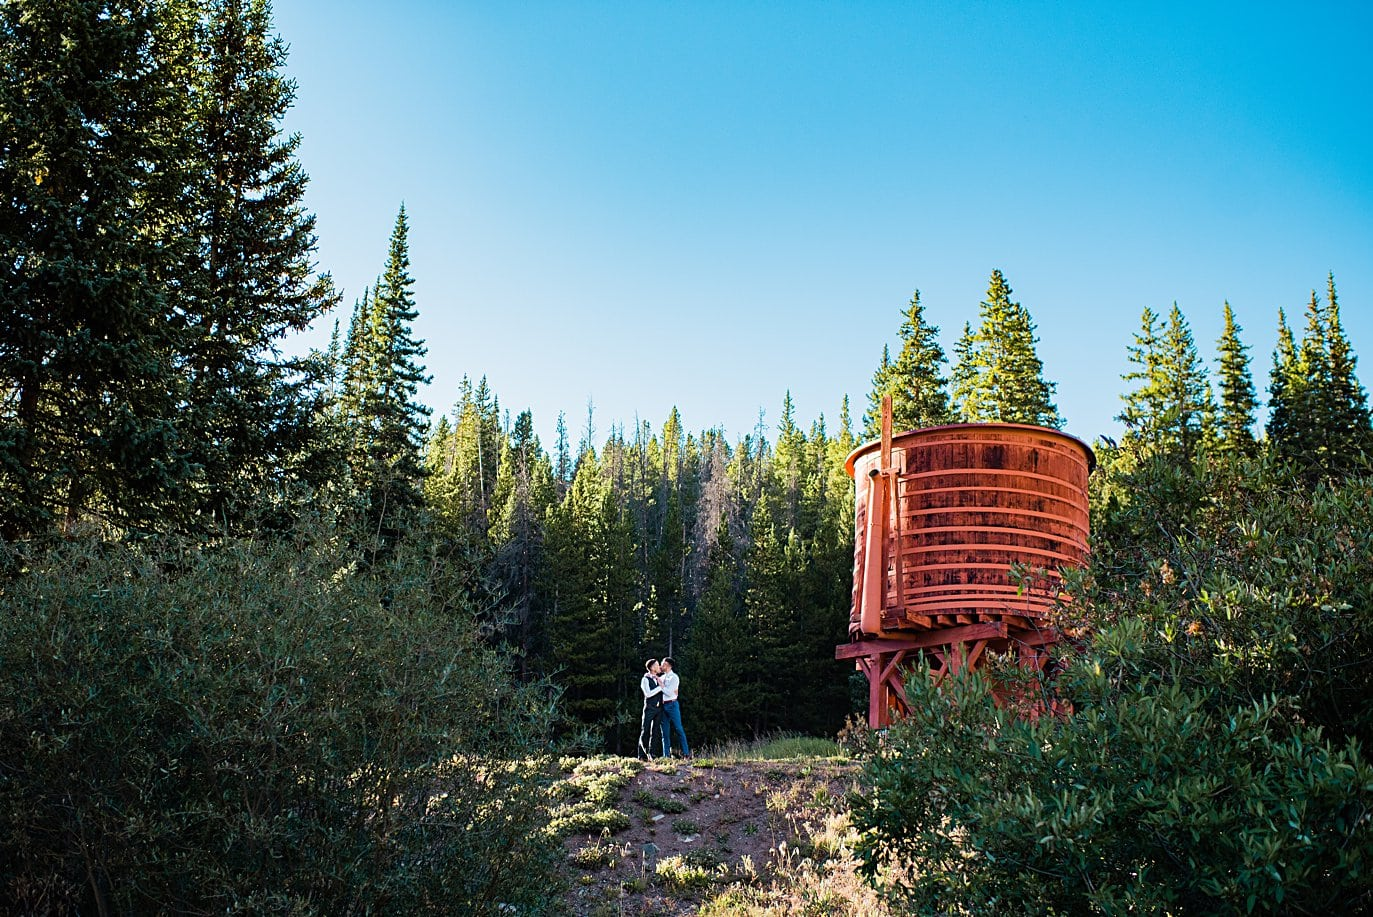 grooms by water tower before ceremony at Breckenridge Elopement by Colorado gay wedding photographer Jennie Crate